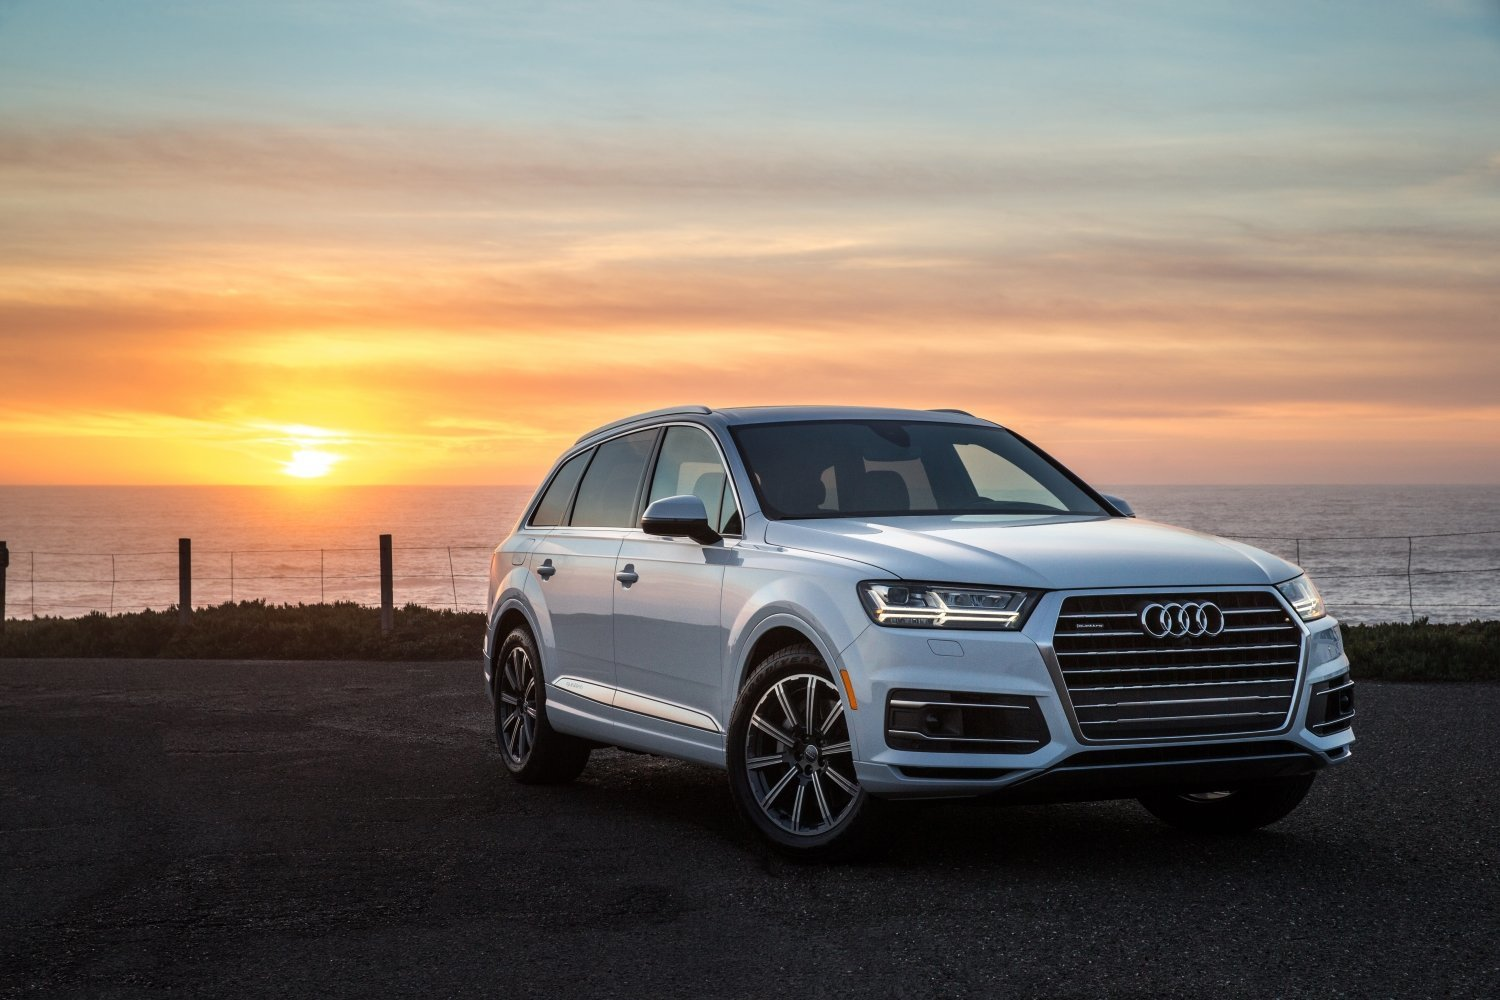 Audi Q Price Lease Long Beach CA - How much is an audi q7